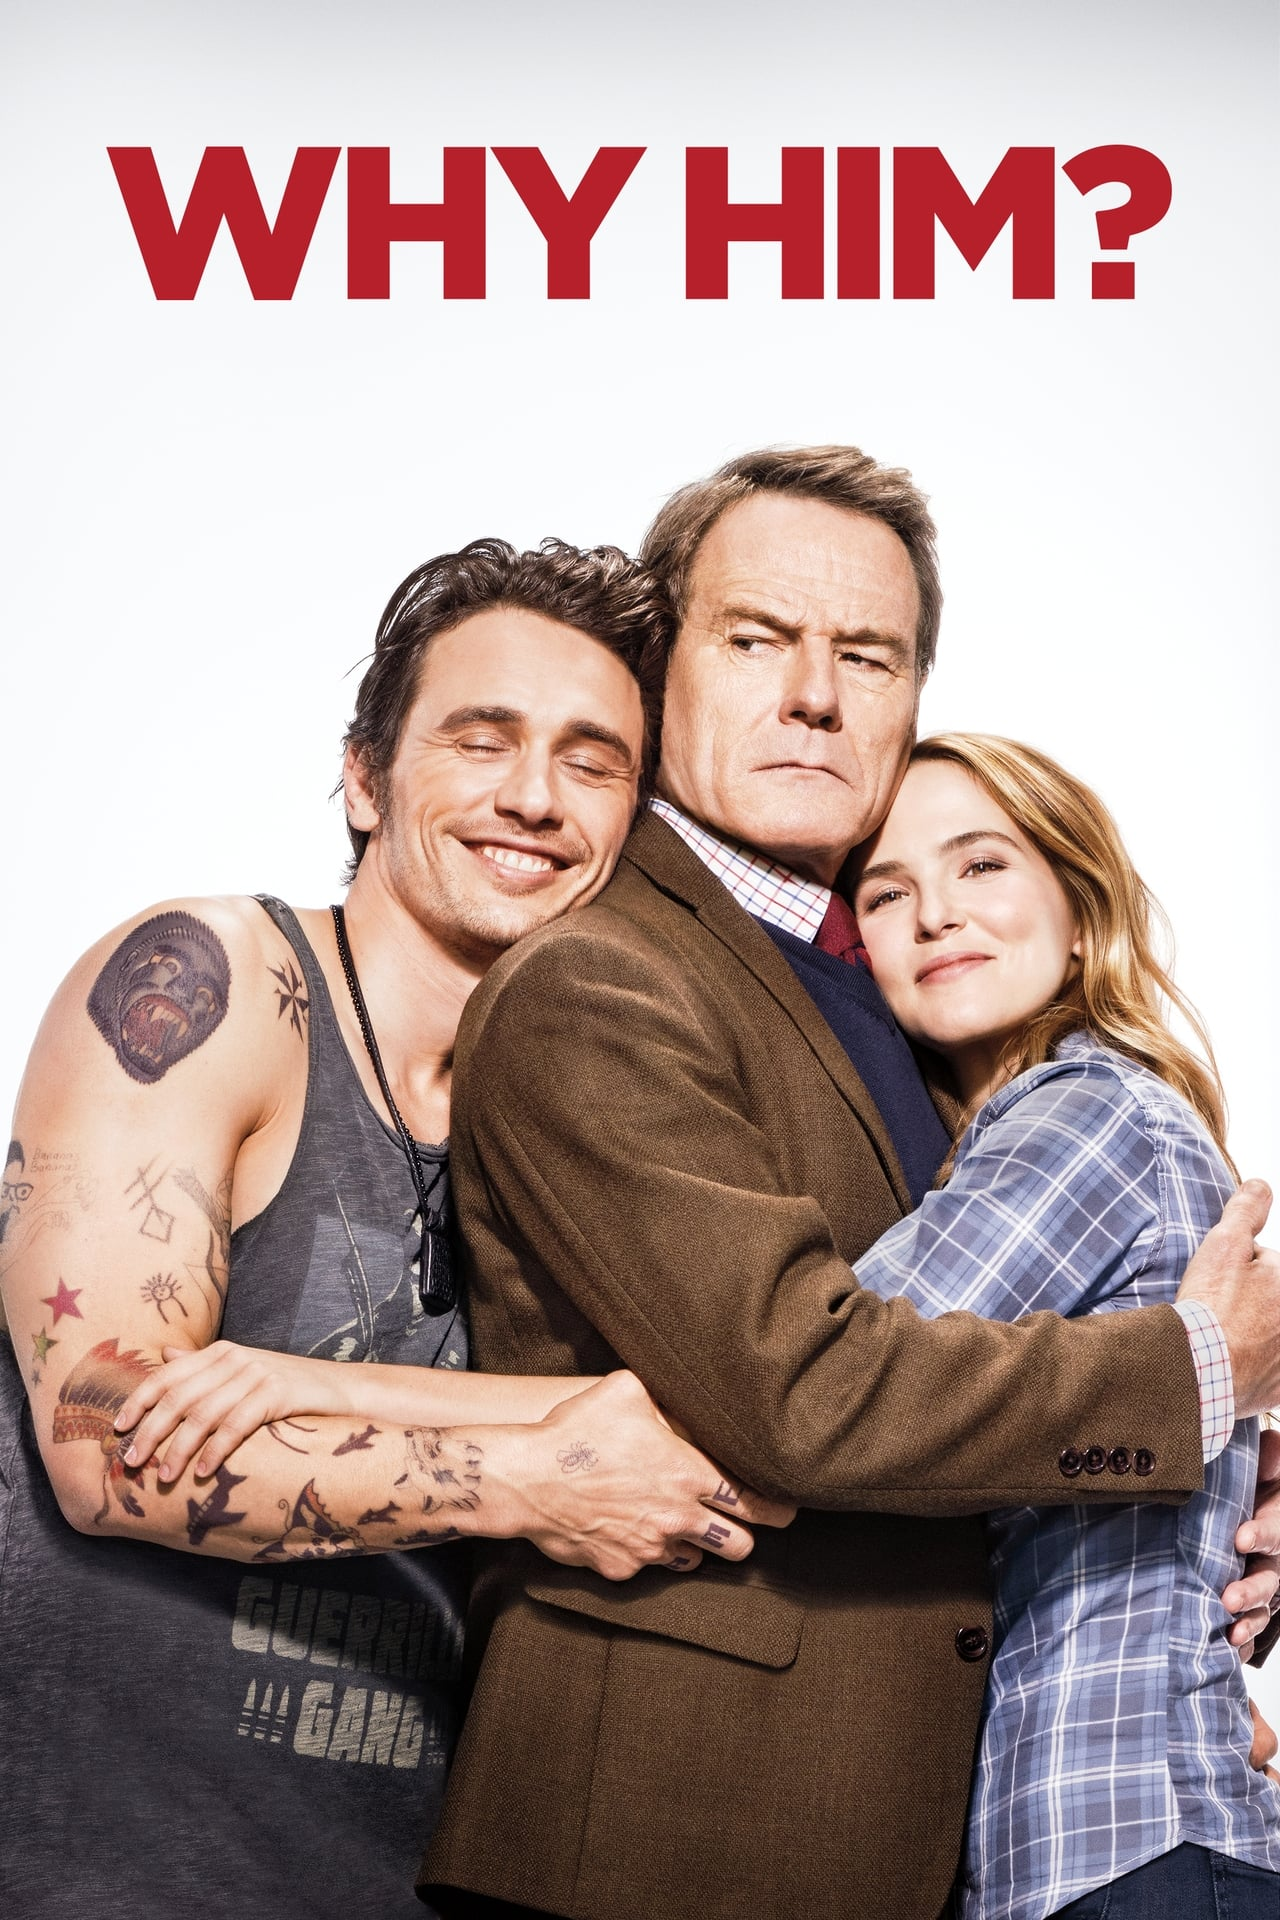 download full movie why him? (2016) english subtitle | 4b design ltd